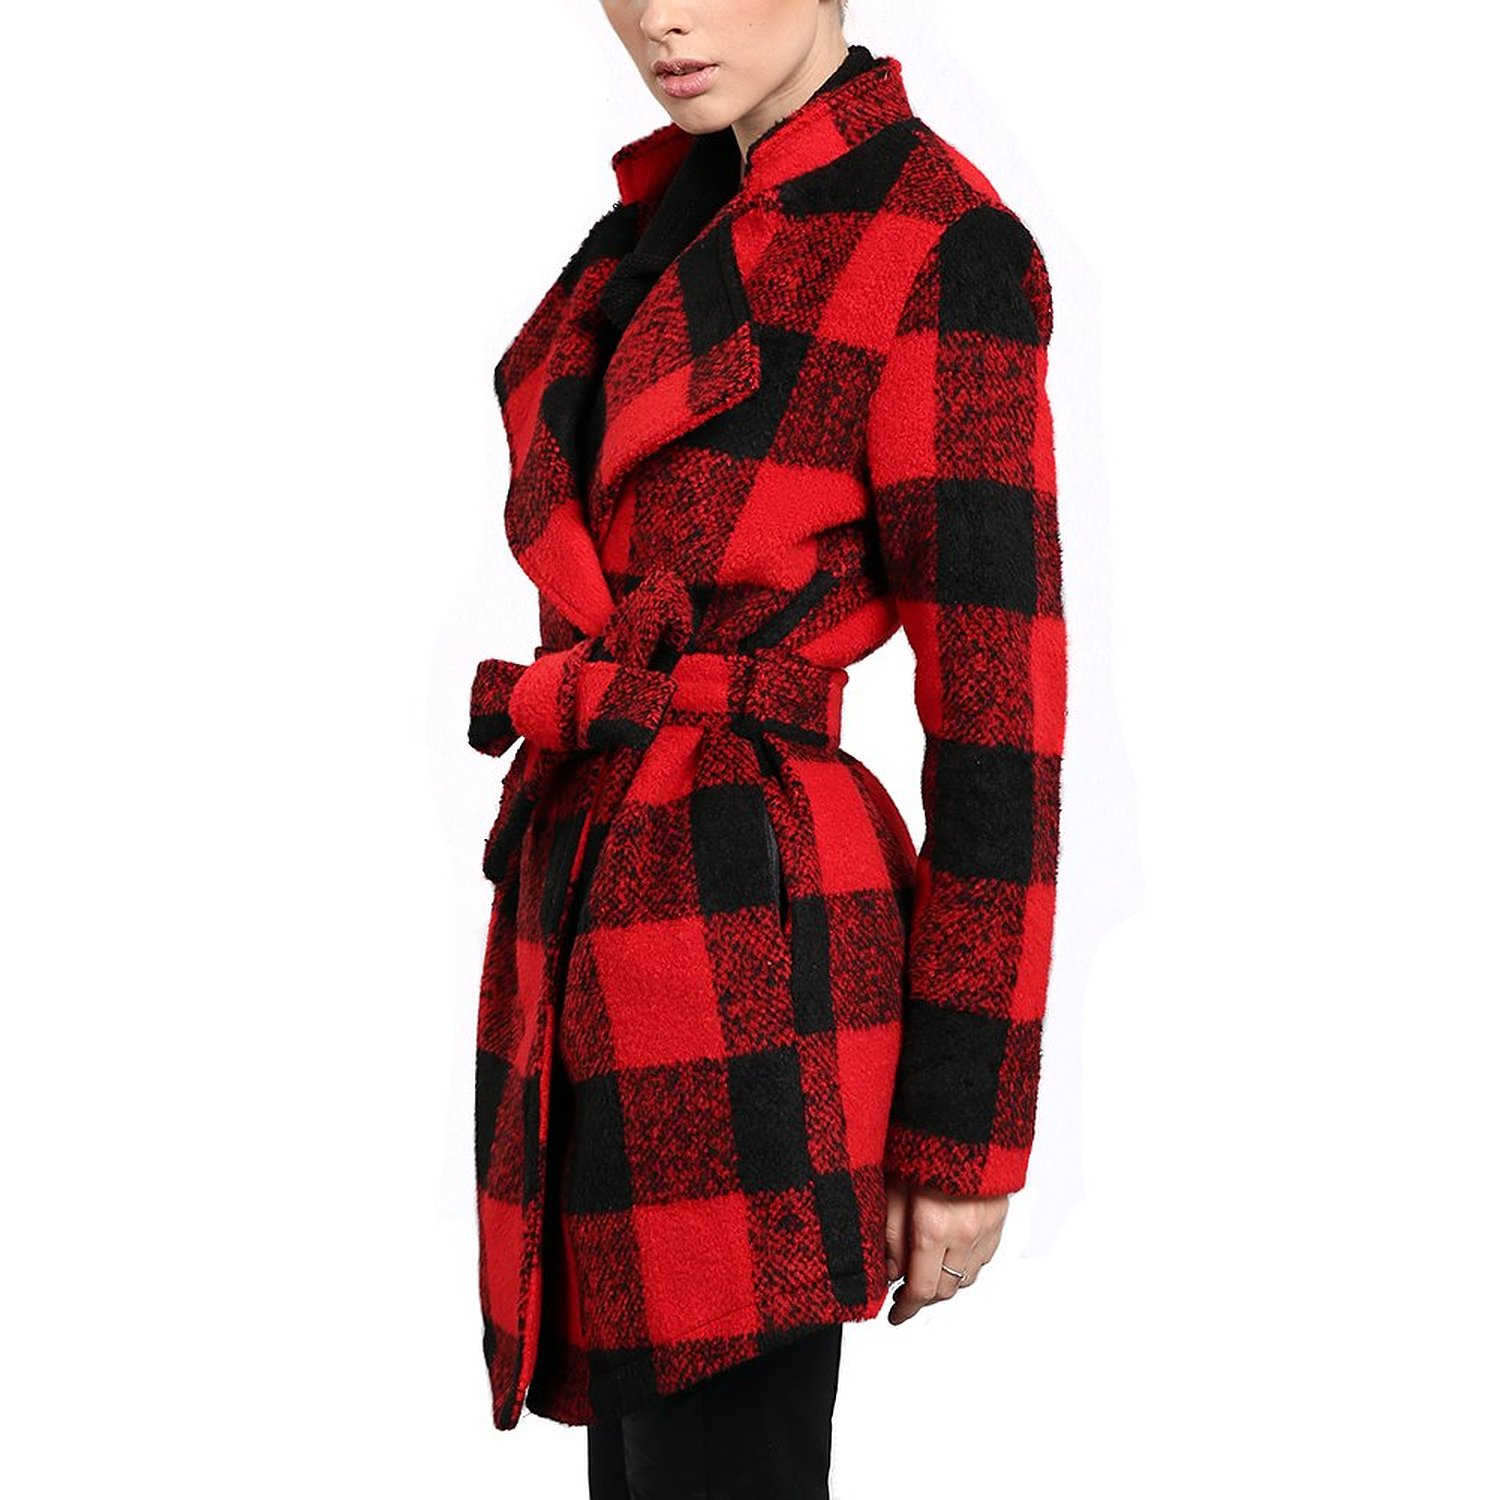 Women Check Plaid Duffle Double Breasted Button Pea Coat Jacket ...